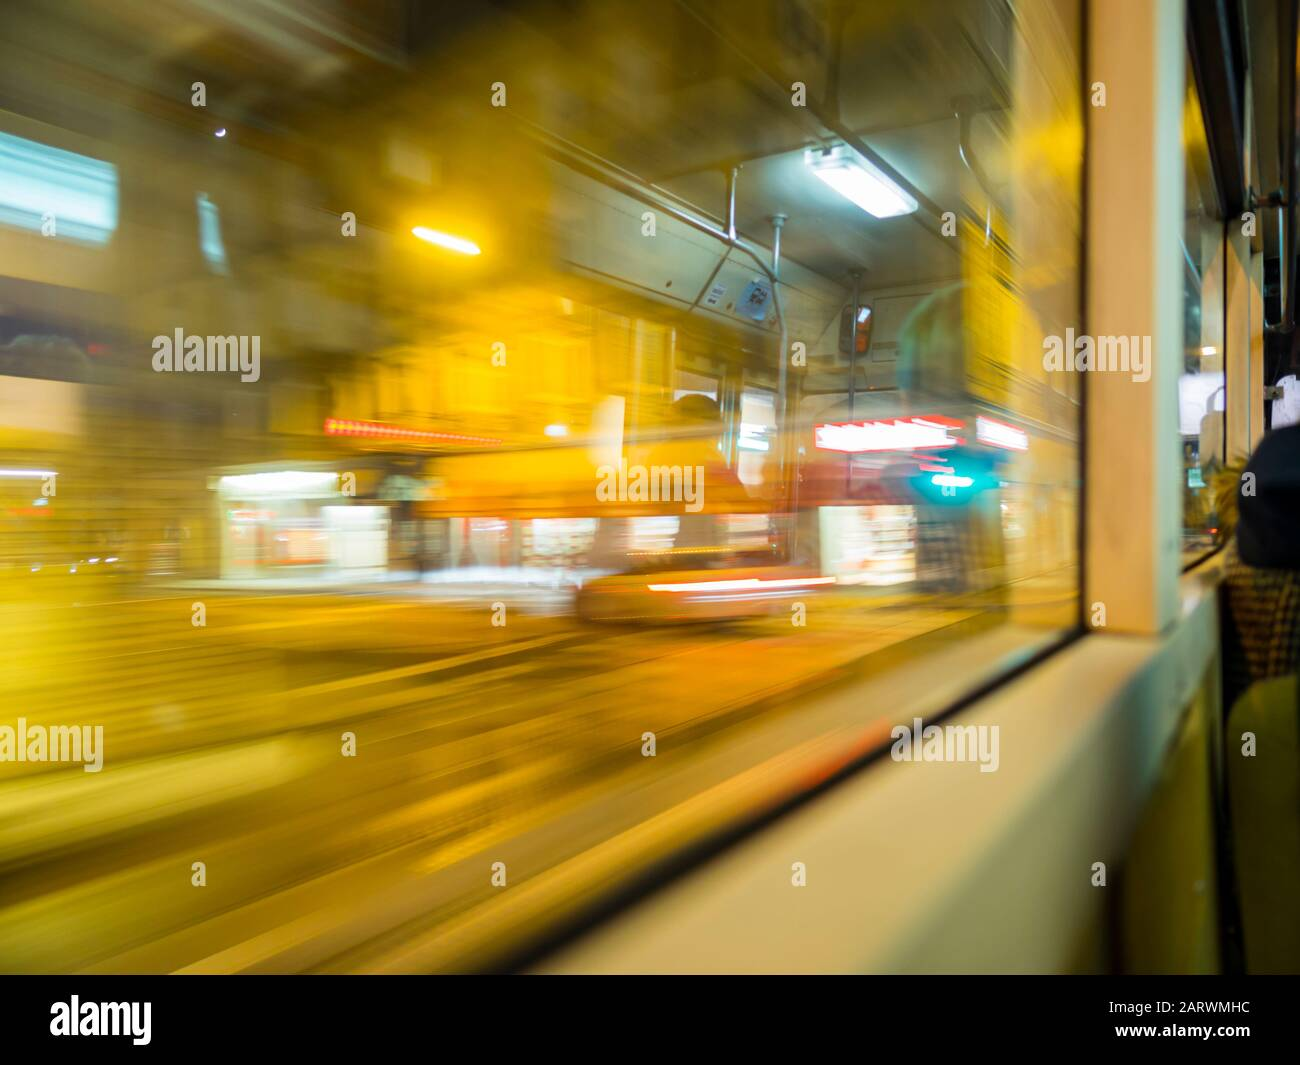 View from bus through window city town urban street motion moving driving intentionally blurry blur background Rijeka Croatia Stock Photo